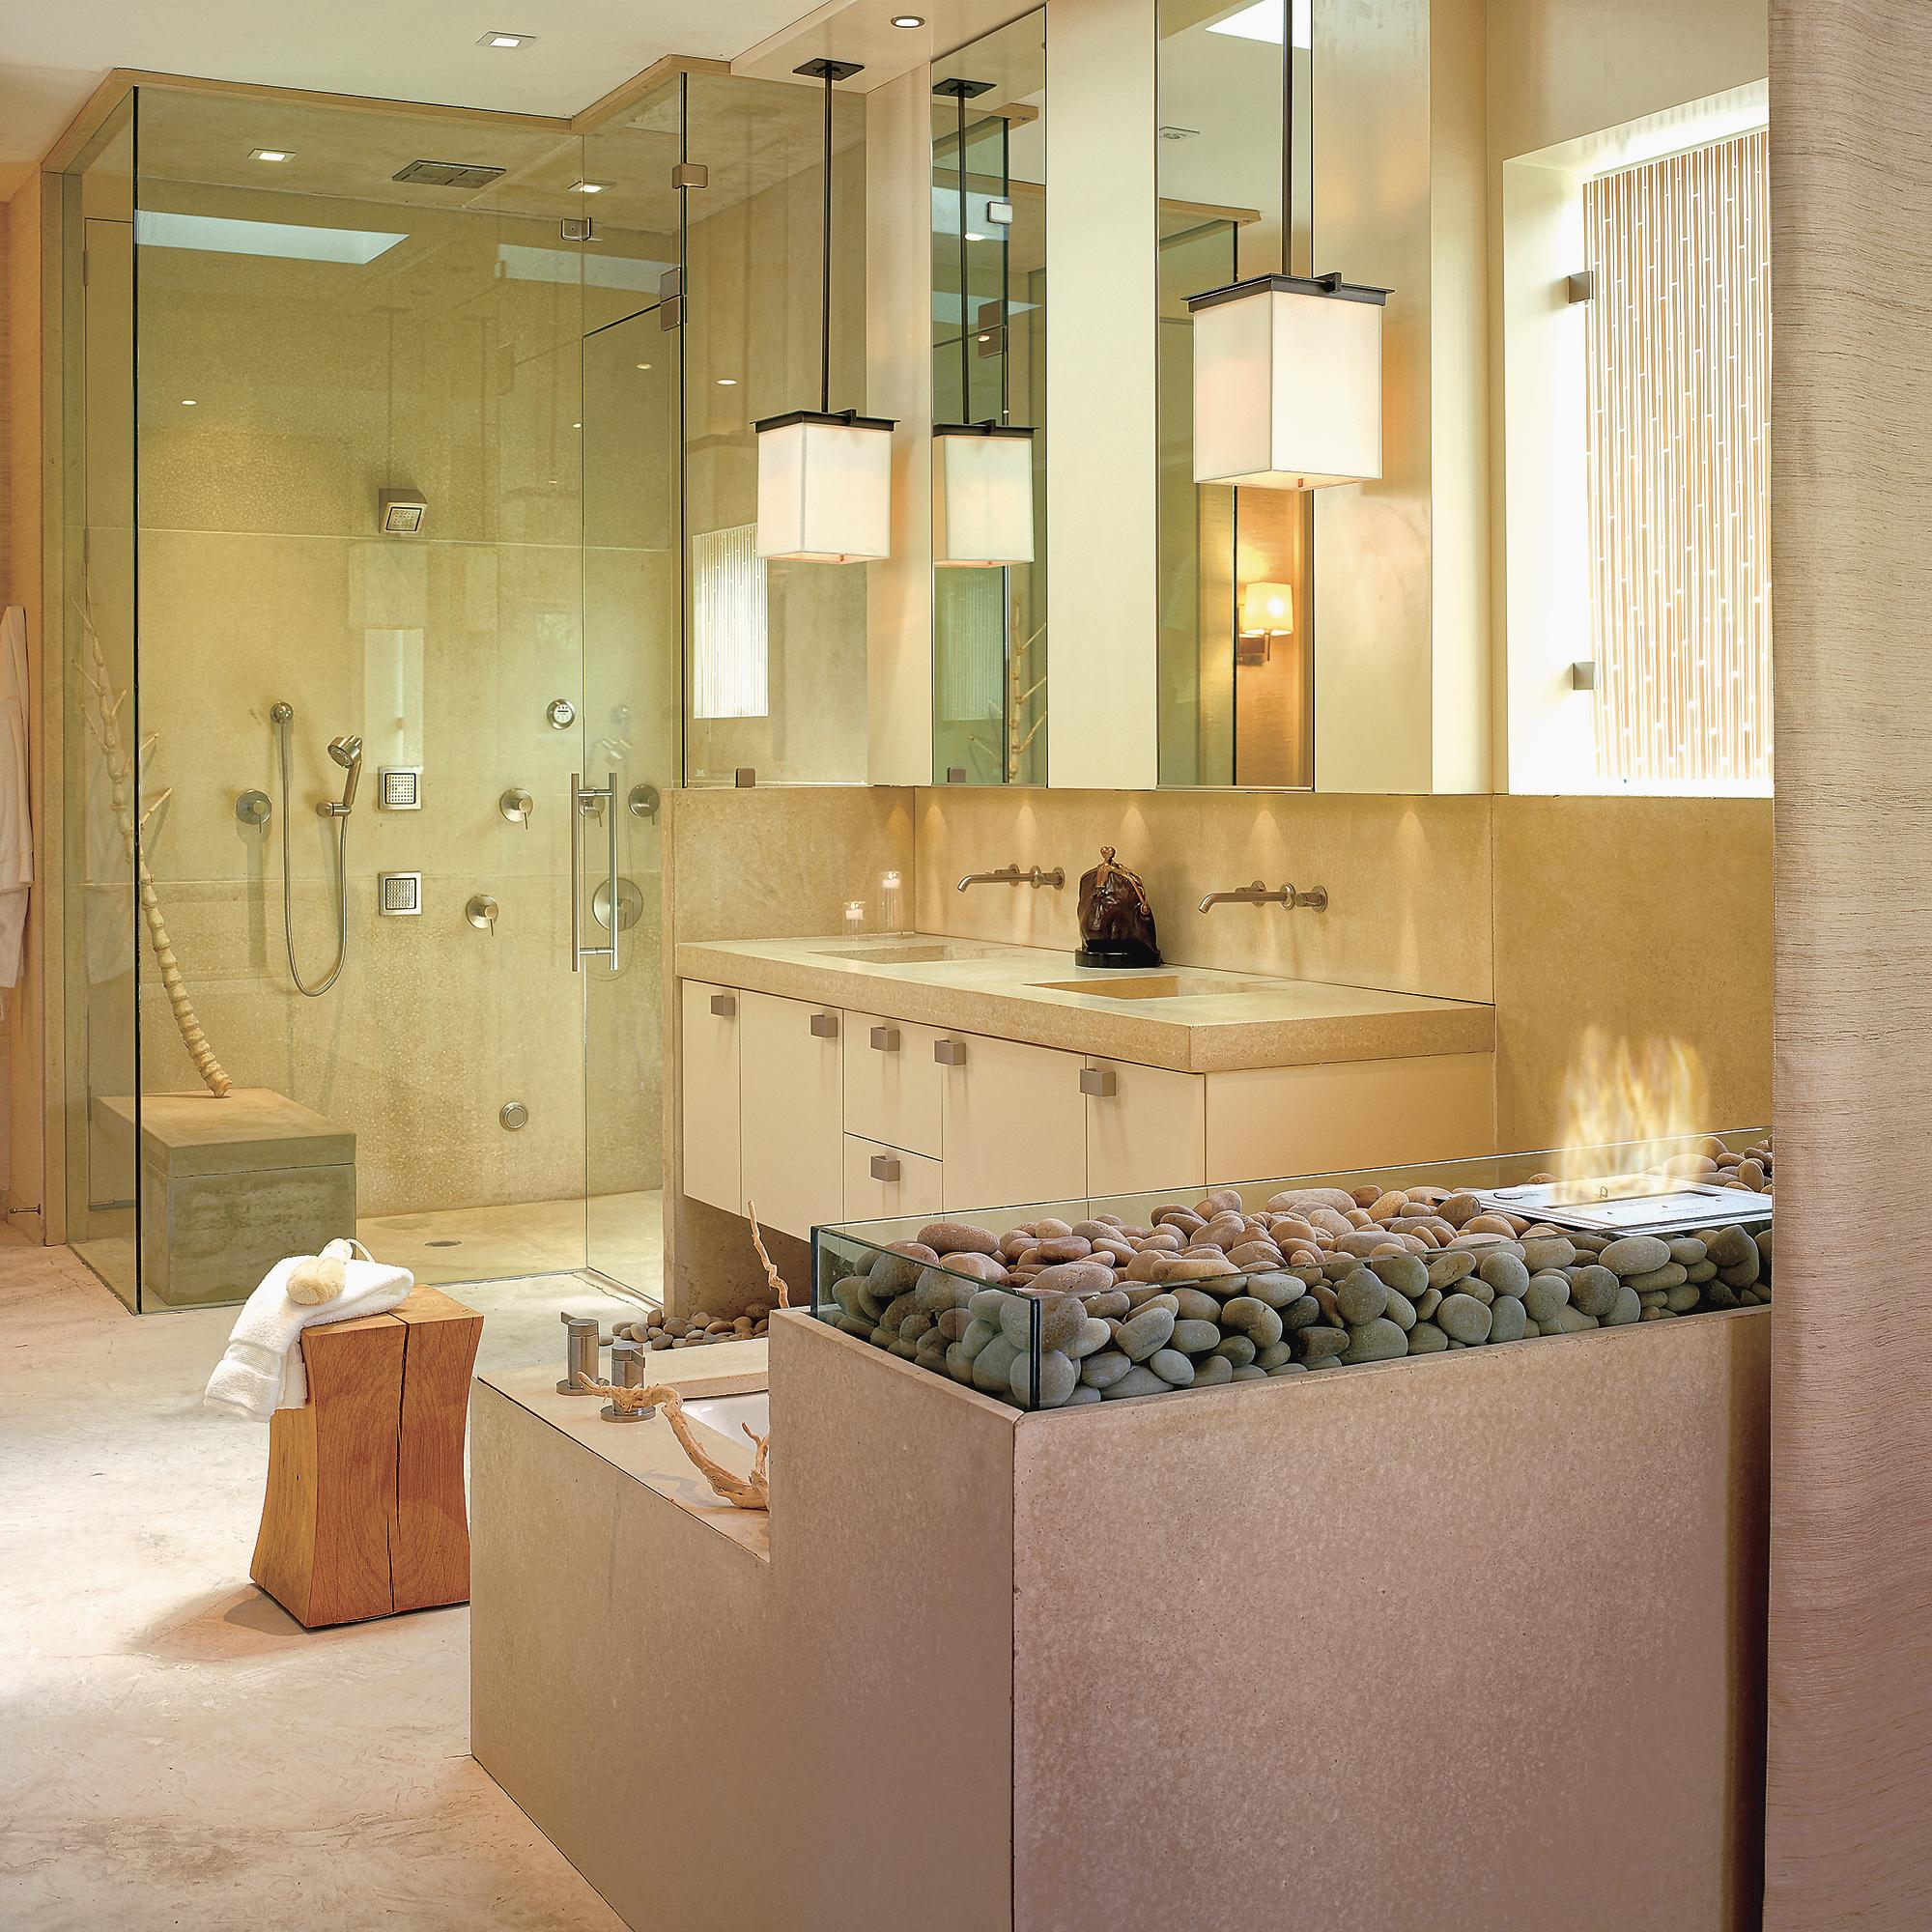 Pendant Drop: Tips for Incorporating Pendant Lights Into a Bathroom ...